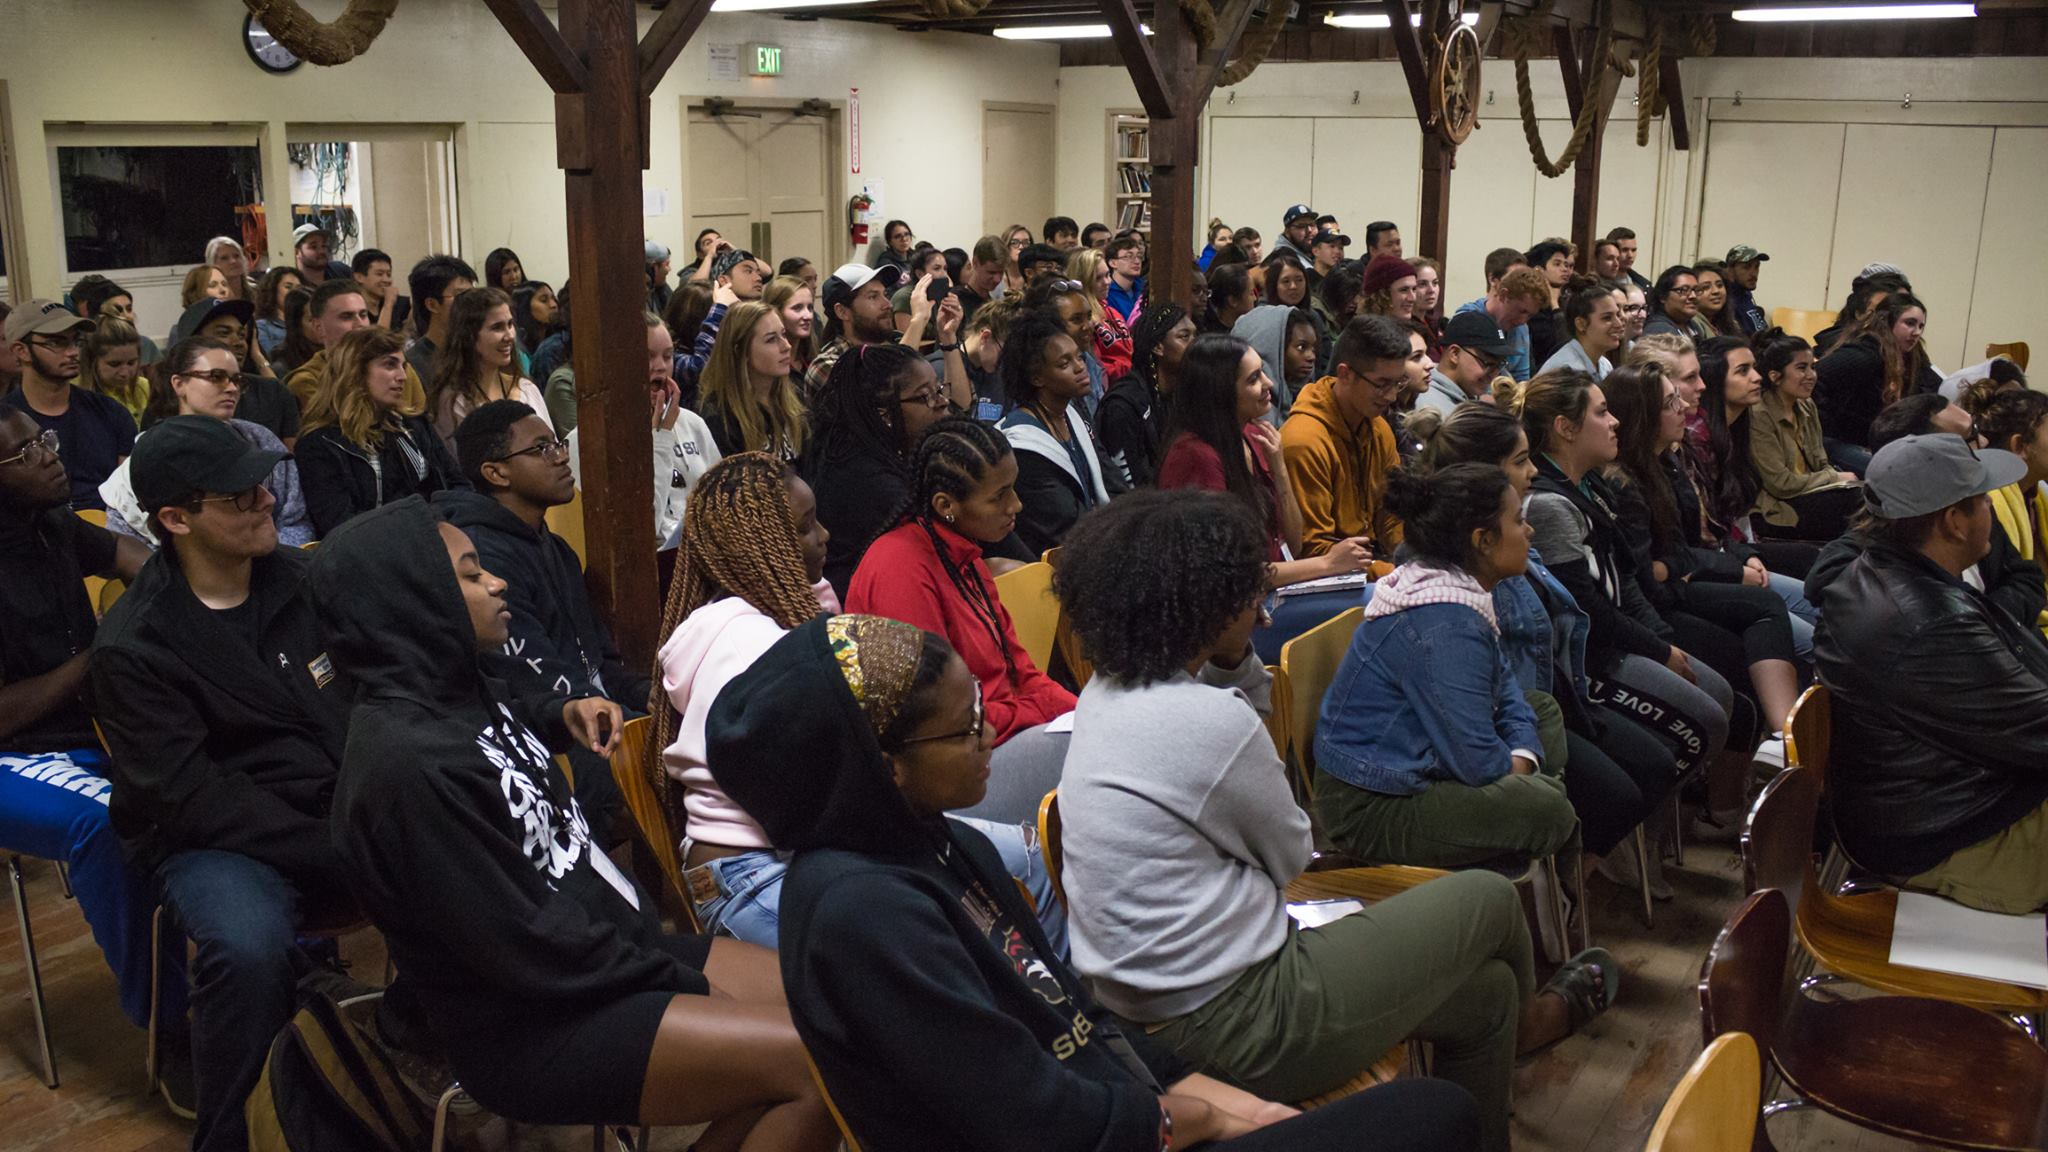 The students listening to our speaker Michael Kim-Eubanks